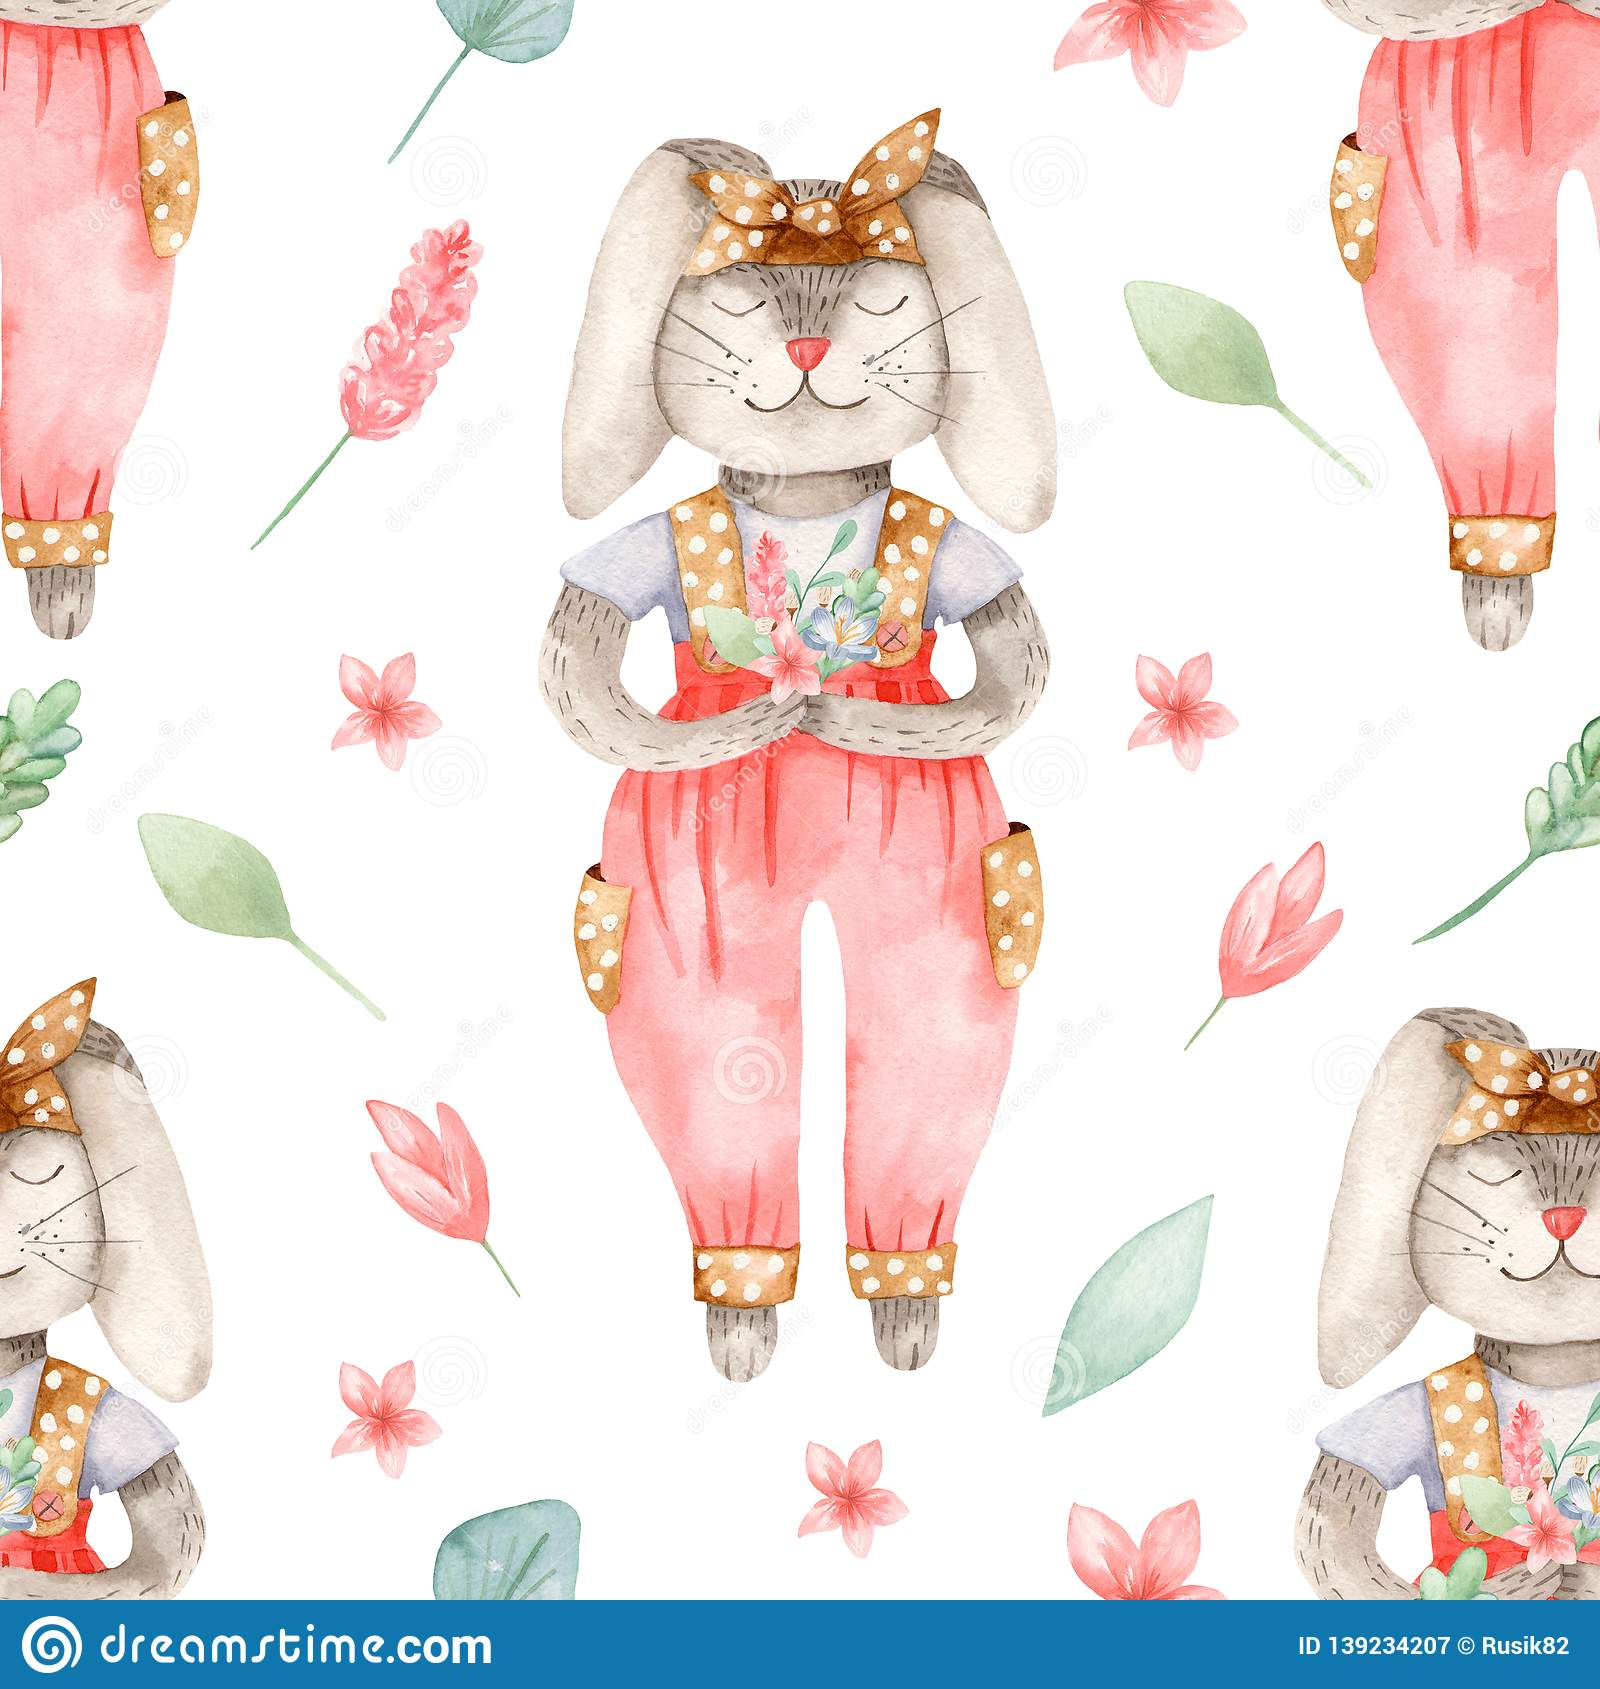 Watercolor Easter Seamless Pattern With Cute Bunny With Flowers Stock Illustration Illustration Of Magical Invitation 139234207